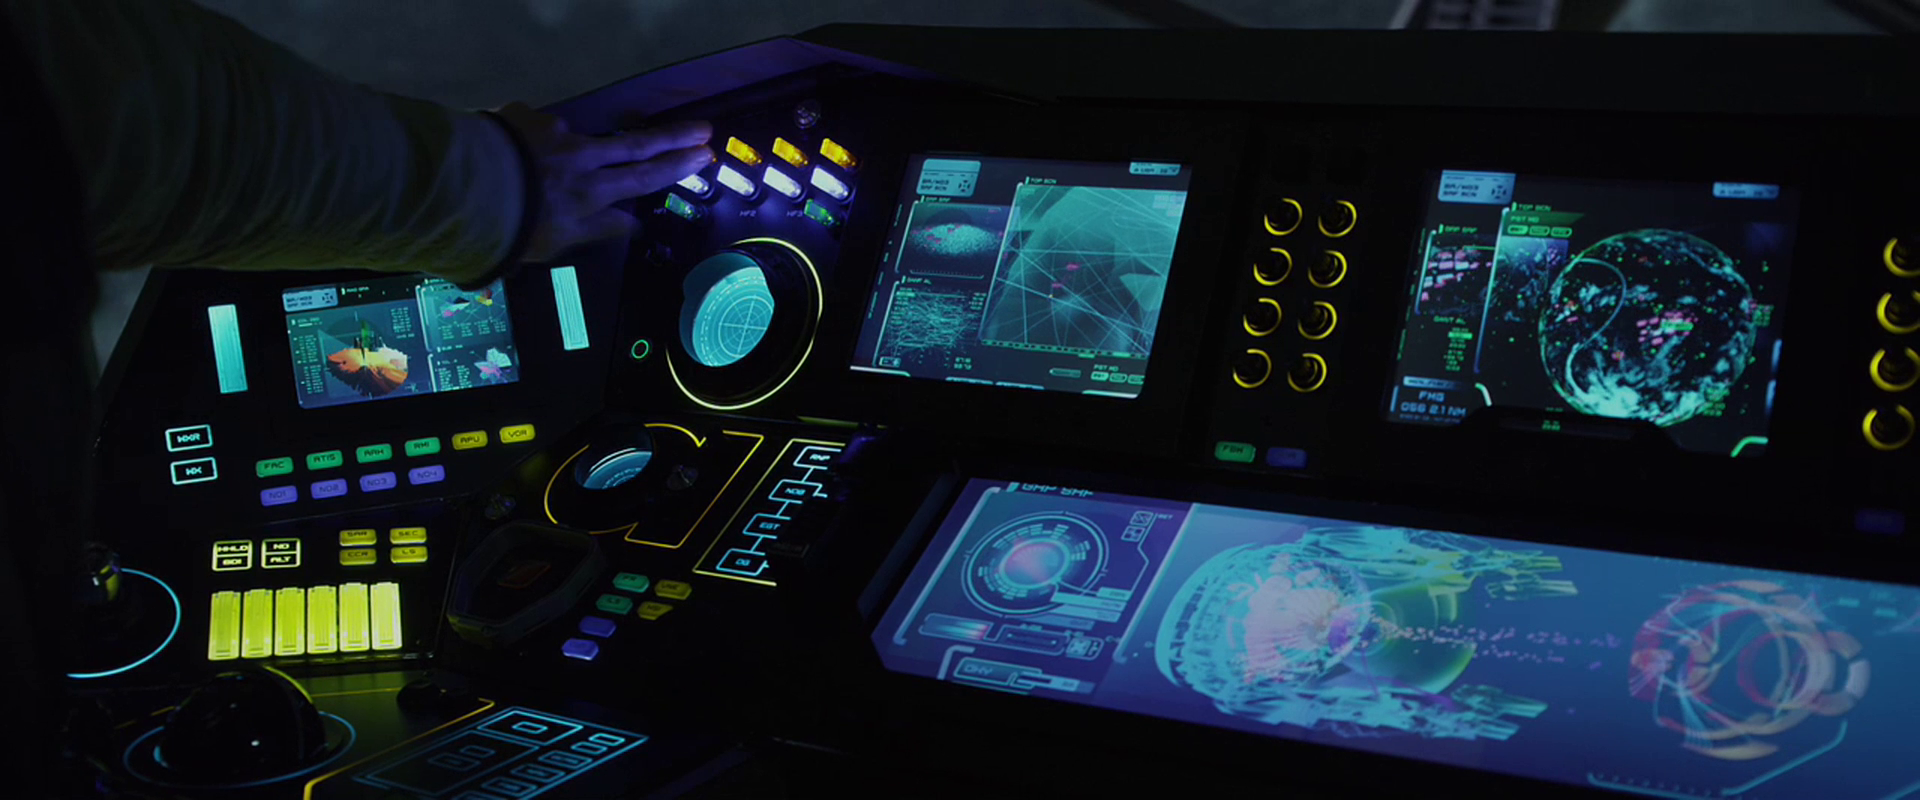 Sci Fi Control Panel Wallpaper : Flight instrument panels sci fi interfaces